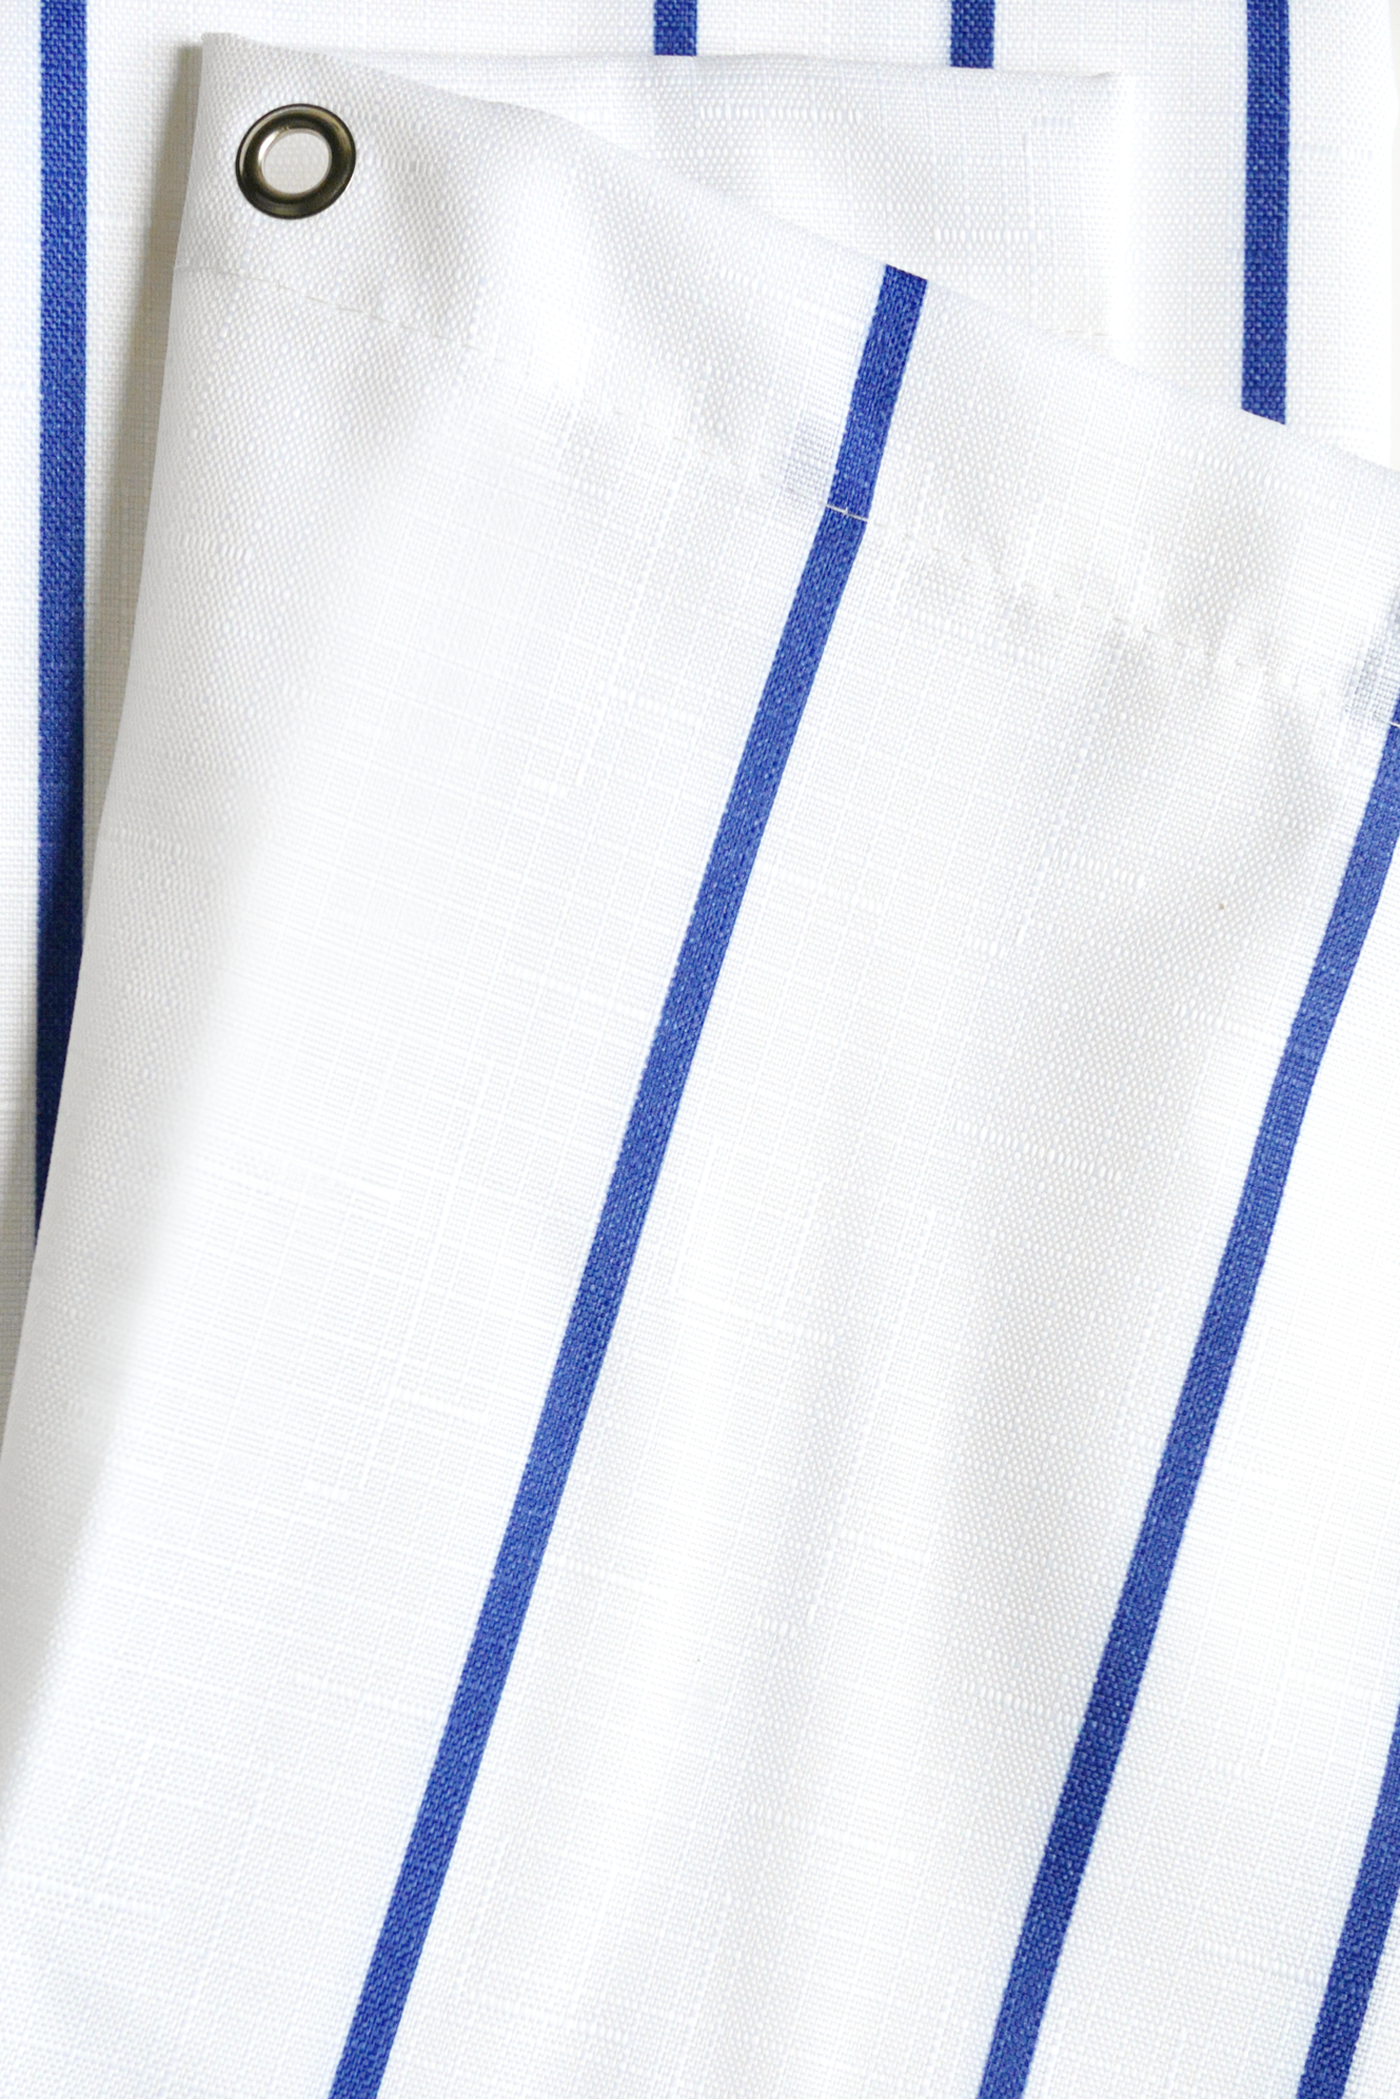 fabric-detail-2.png